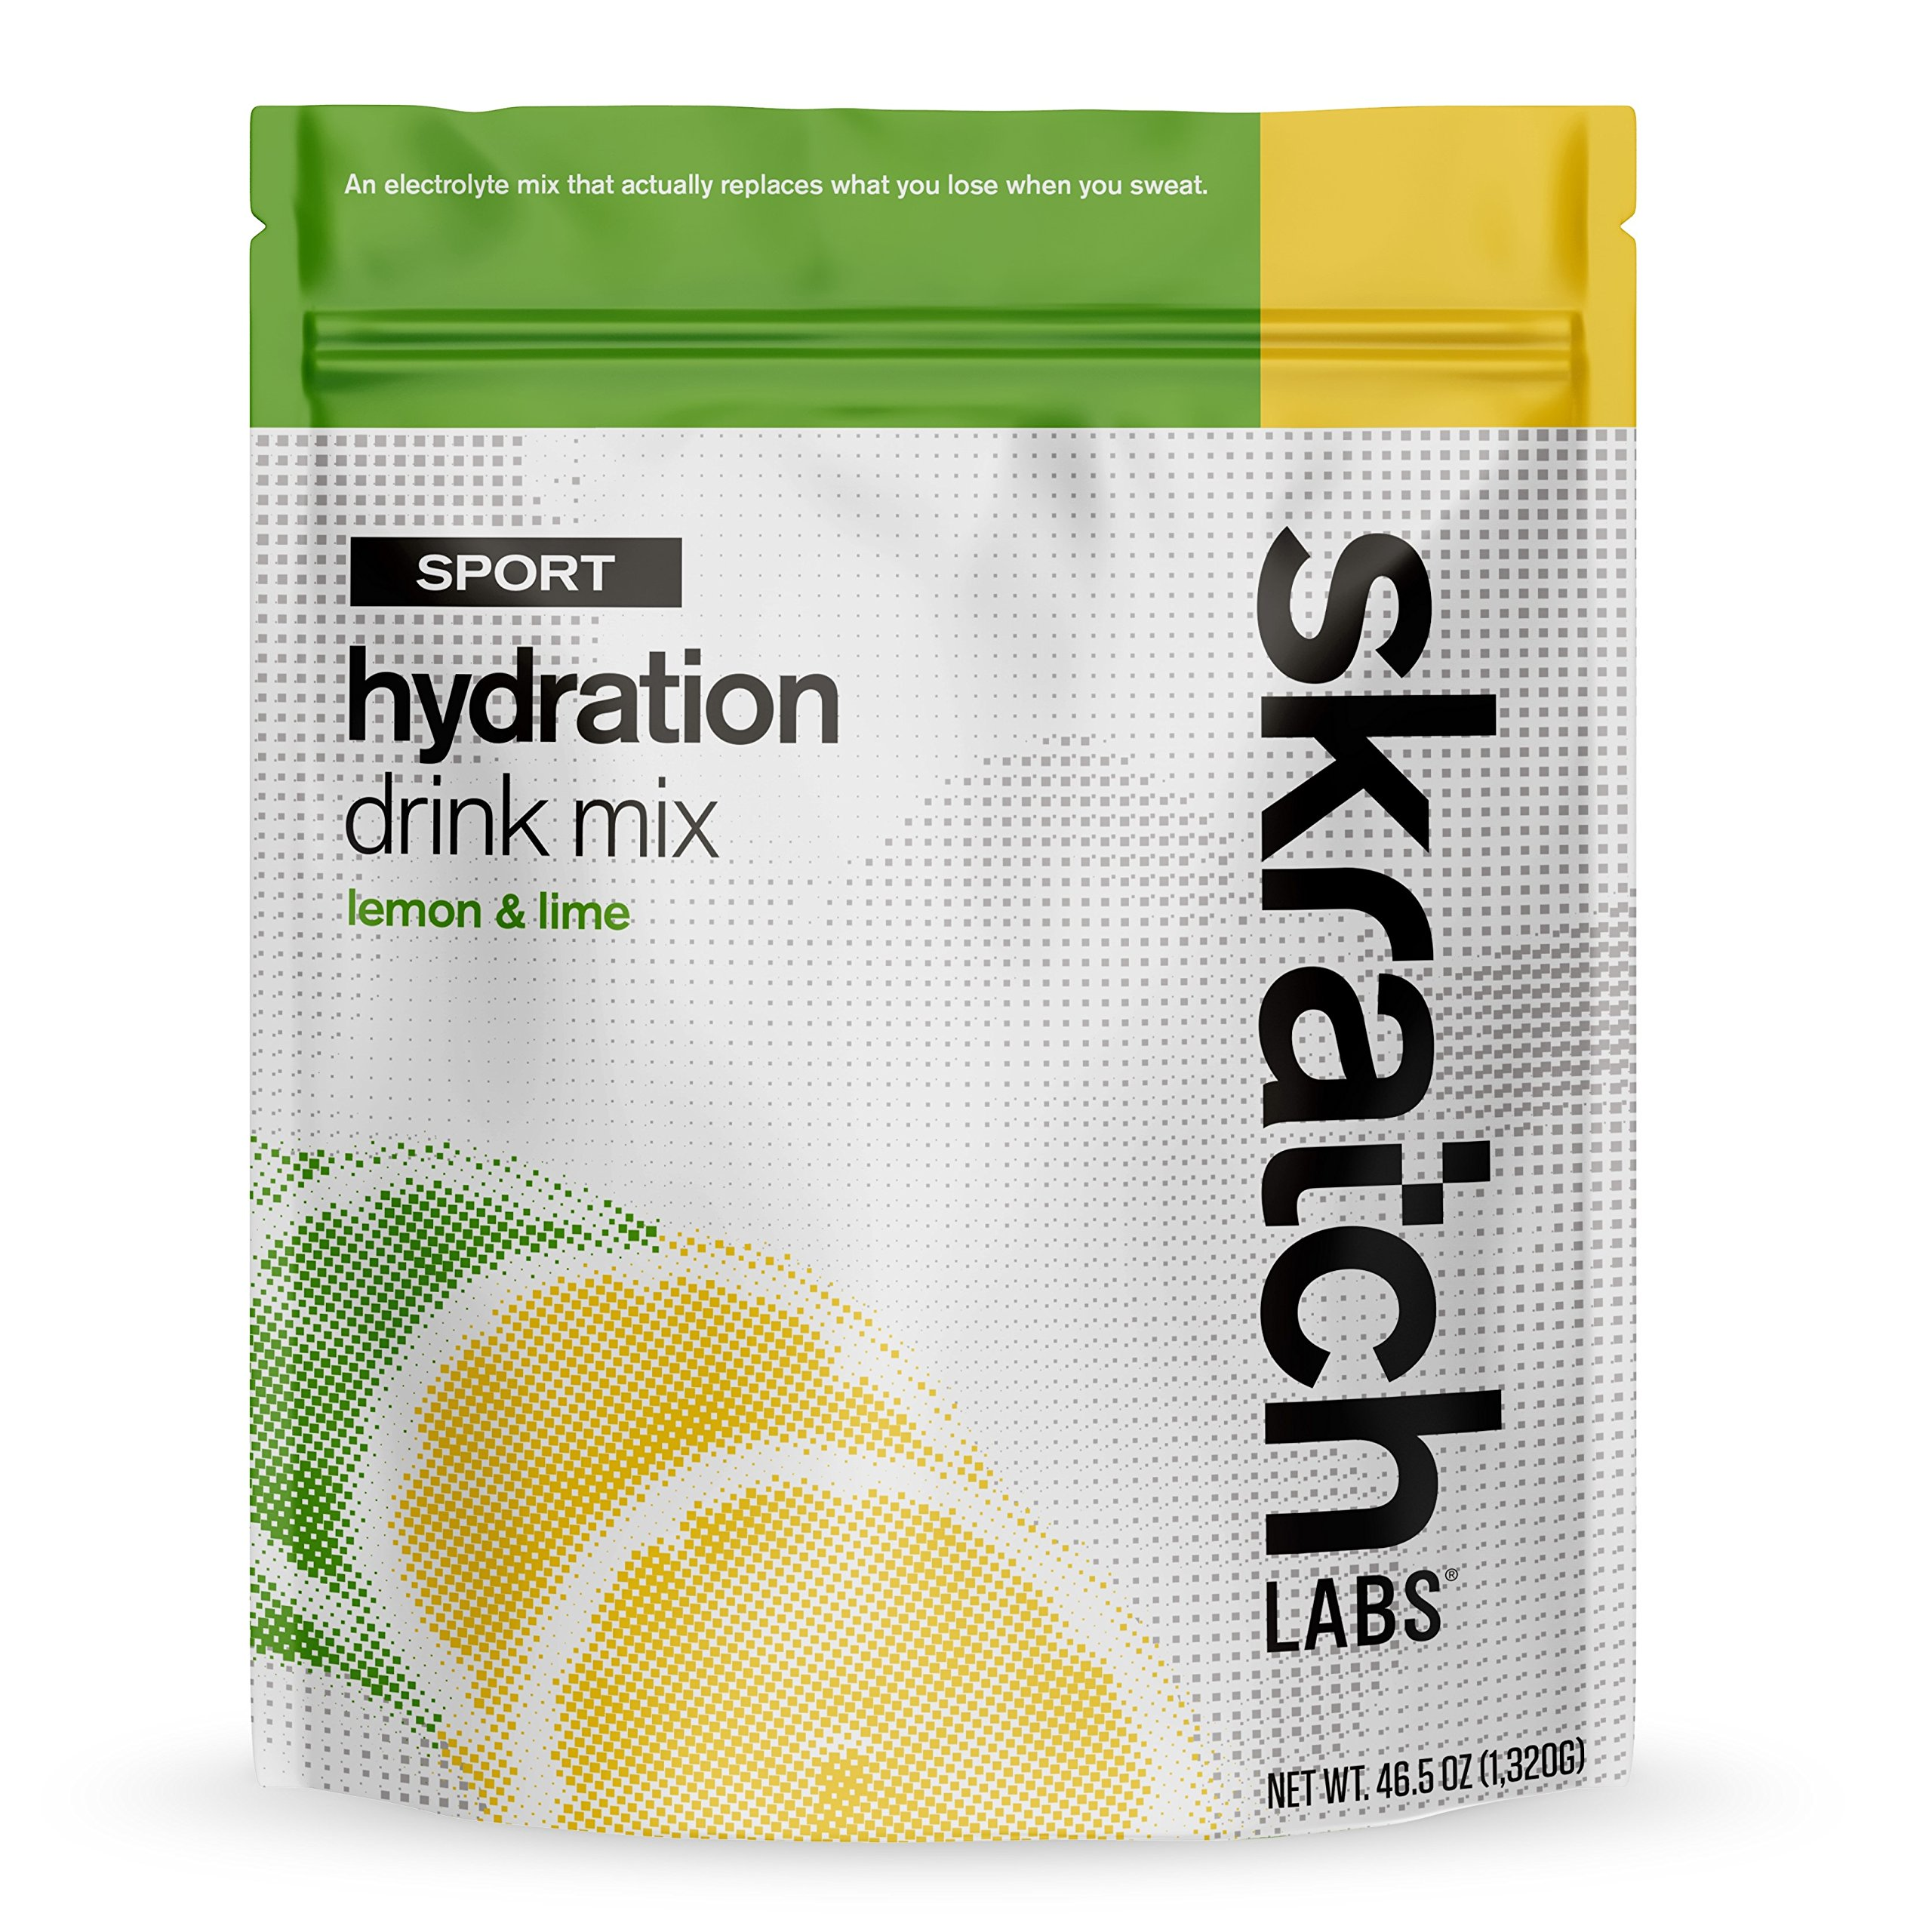 SKRATCH LABS Sport Hydration Drink Mix, Lemon Lime (46.5 oz, 60 servings) - Natural, Electrolyte Powder Developed for Athletes and Sports Performance, Gluten Free, Vegan, Kosher by Skratch Labs (Image #1)